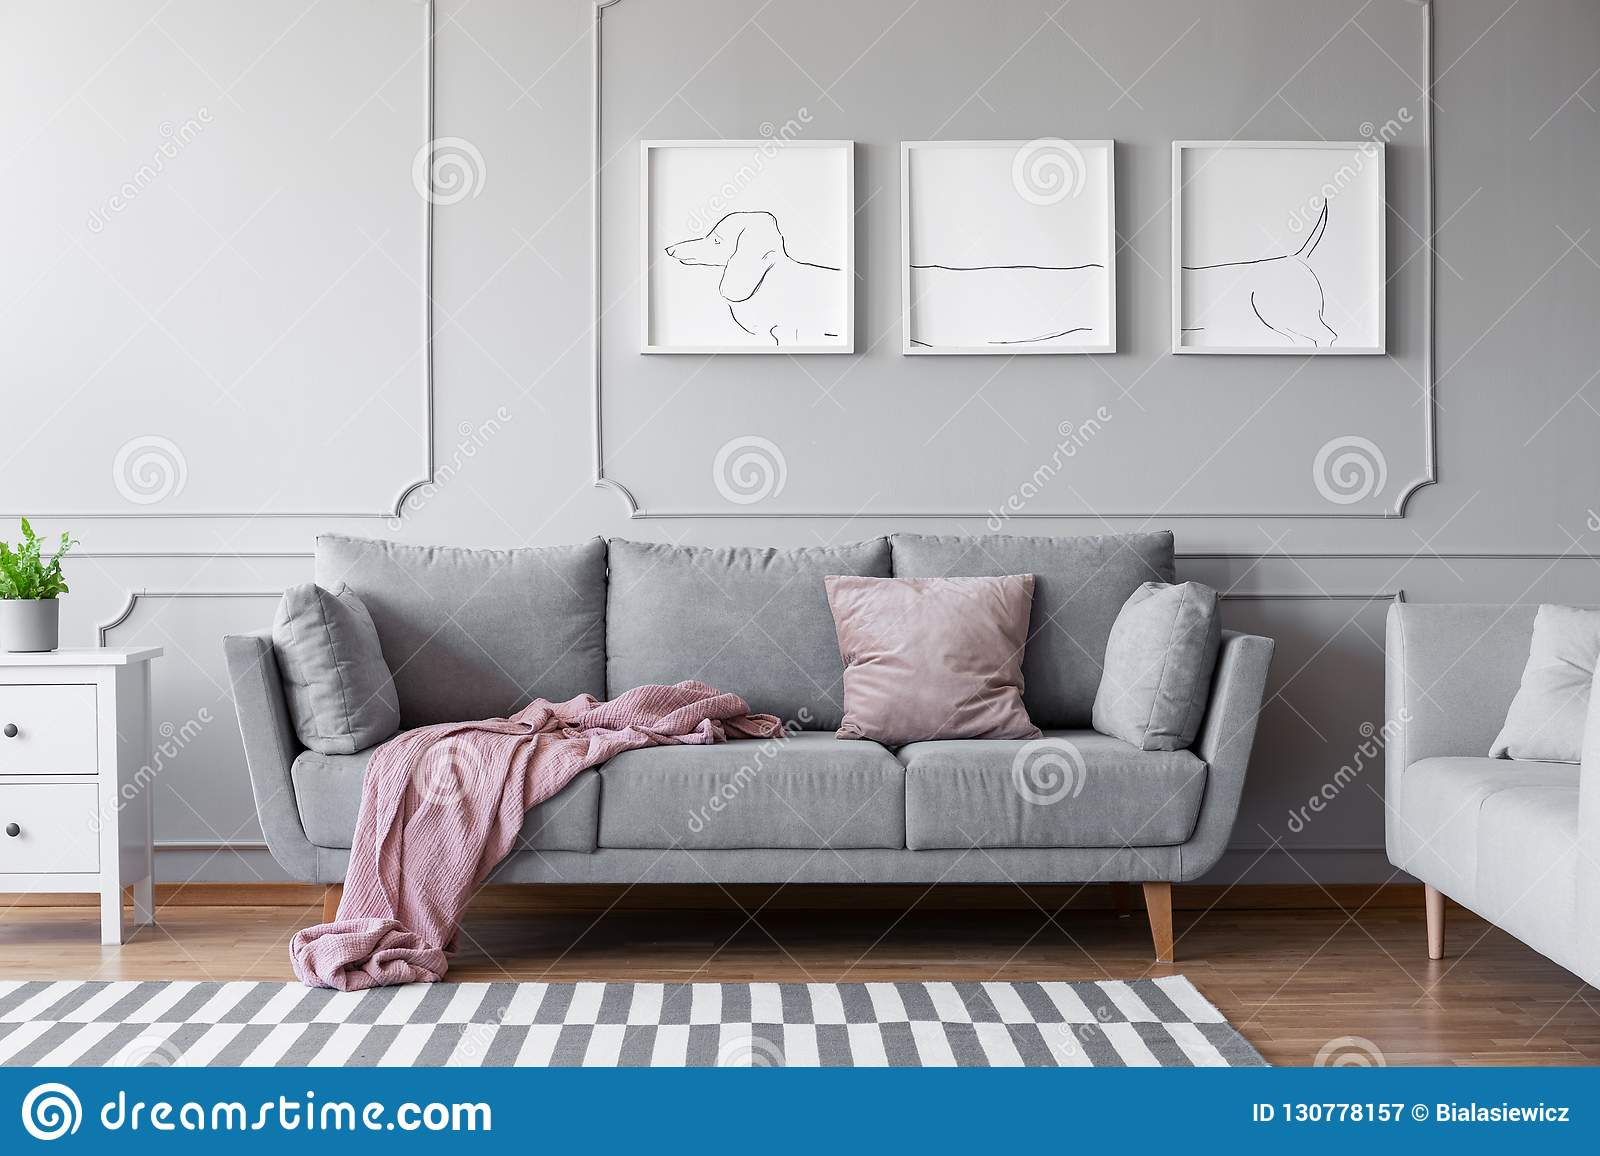 Dog S Posters Above Comfortable Grey Couch In Stylish Living Room